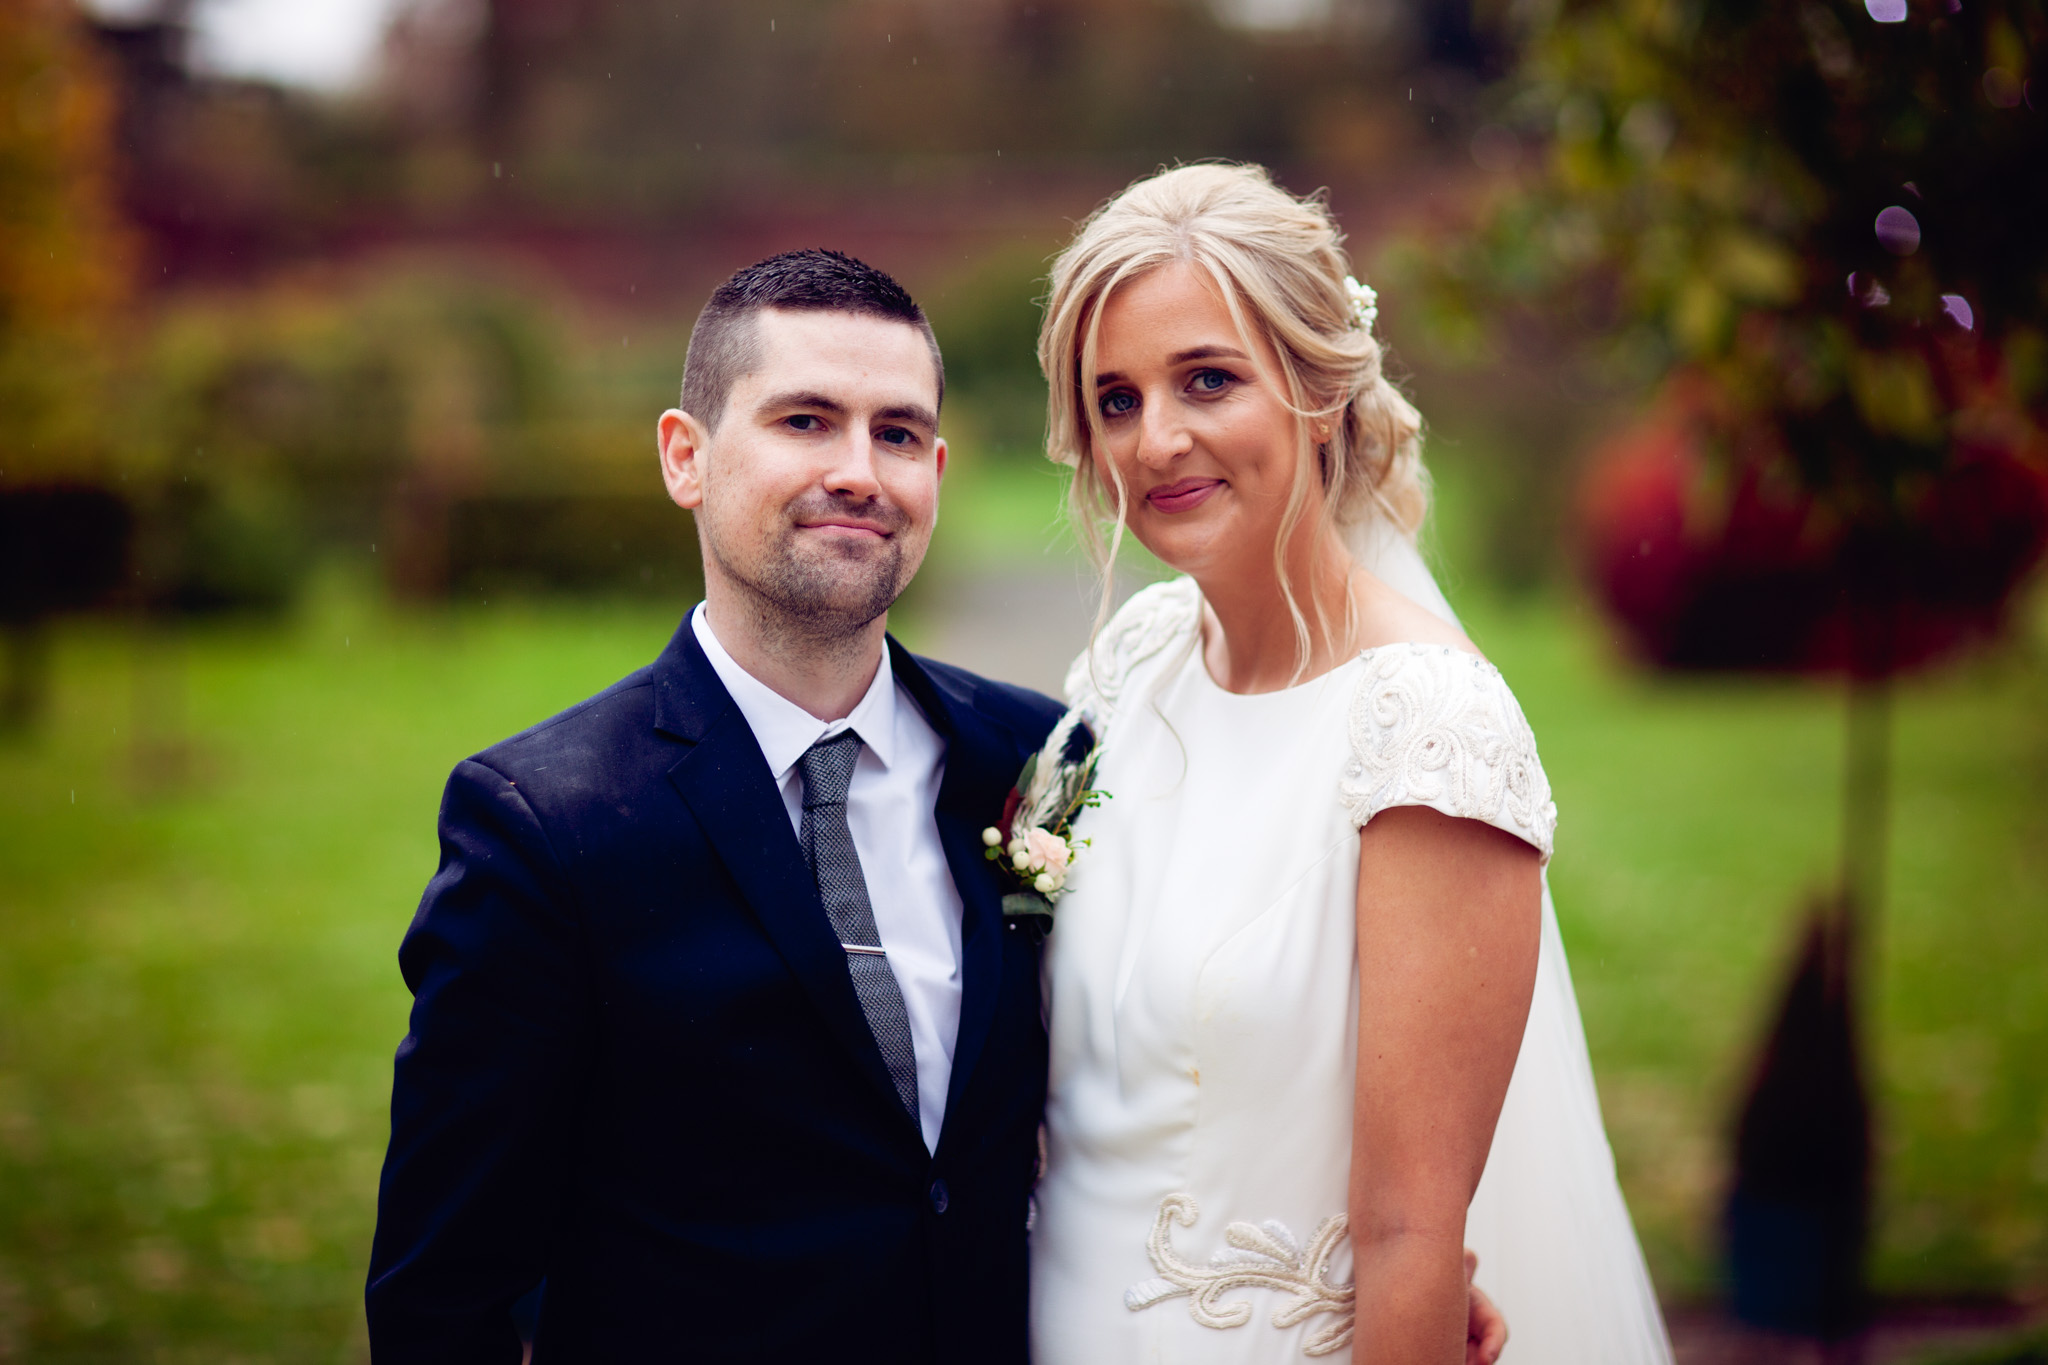 Mark_Barnes_Northern_Ireland_Wedding_Photography_Ballyscullion_Park_Wedding_Photography_Stef&Bobby-37.jpg